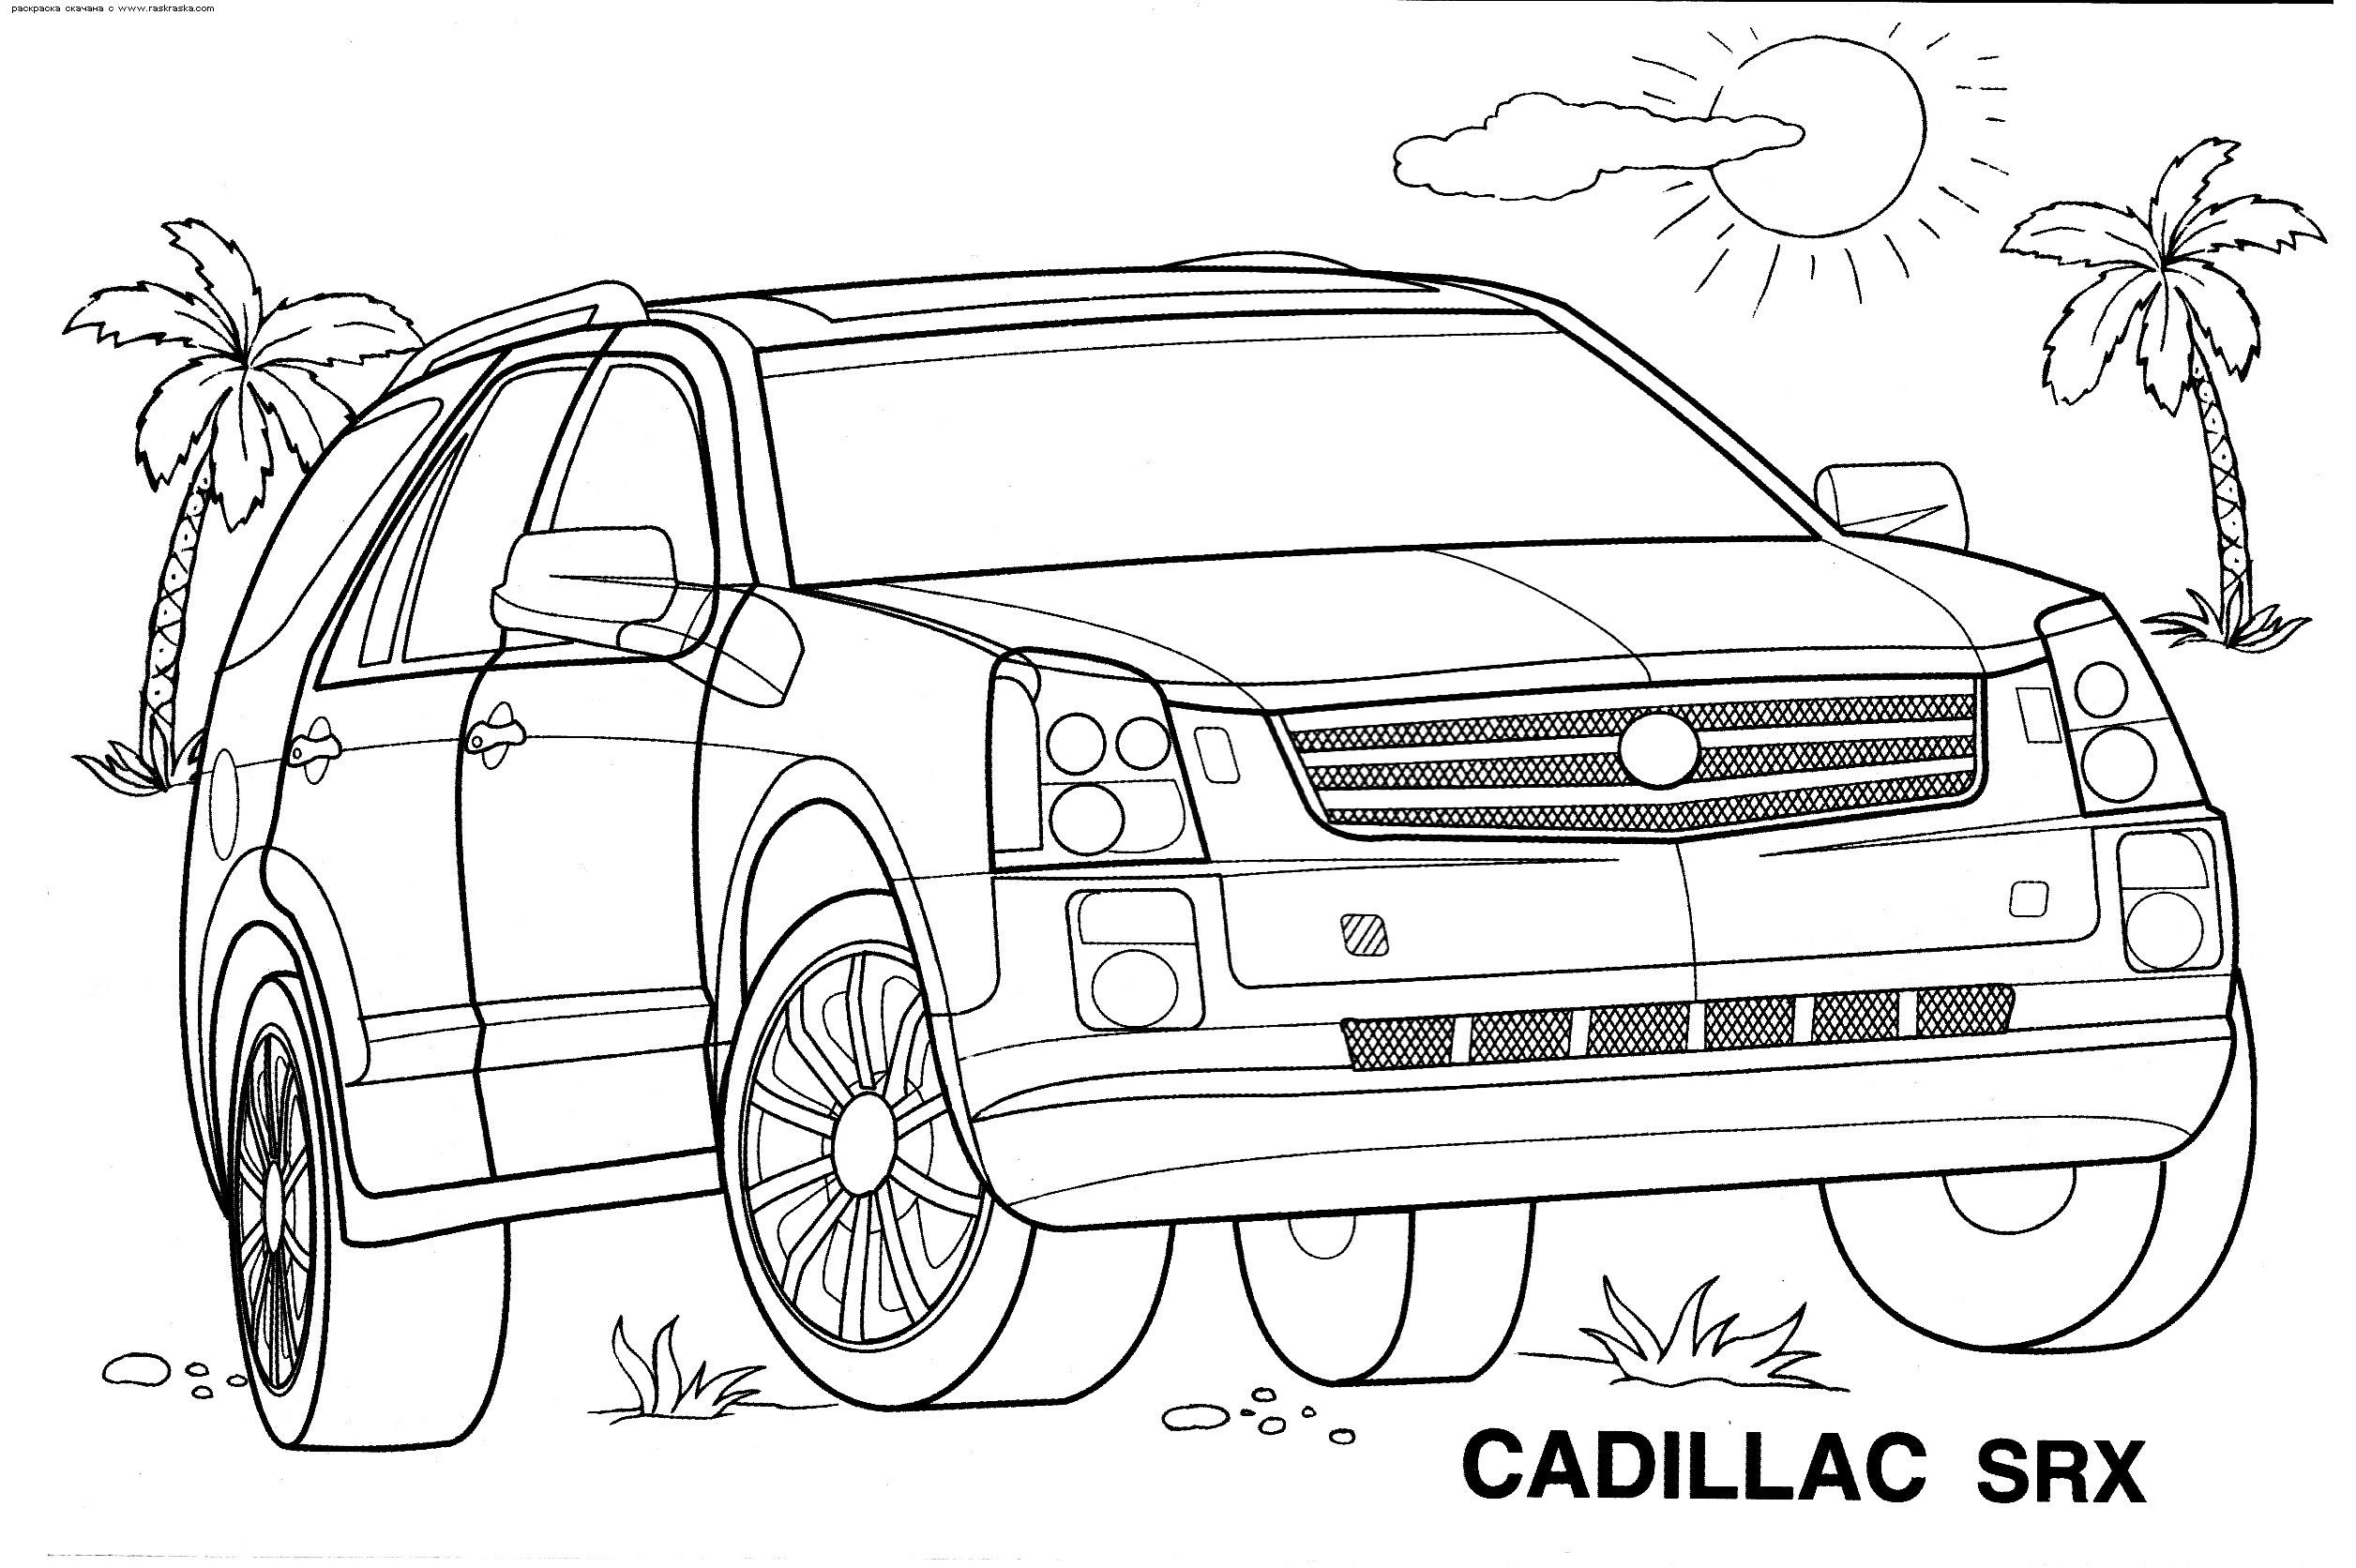 Barbie Car Coloring Pages Bubakids Com Recipe Barbie Car Cars Coloring Pages Car Colors